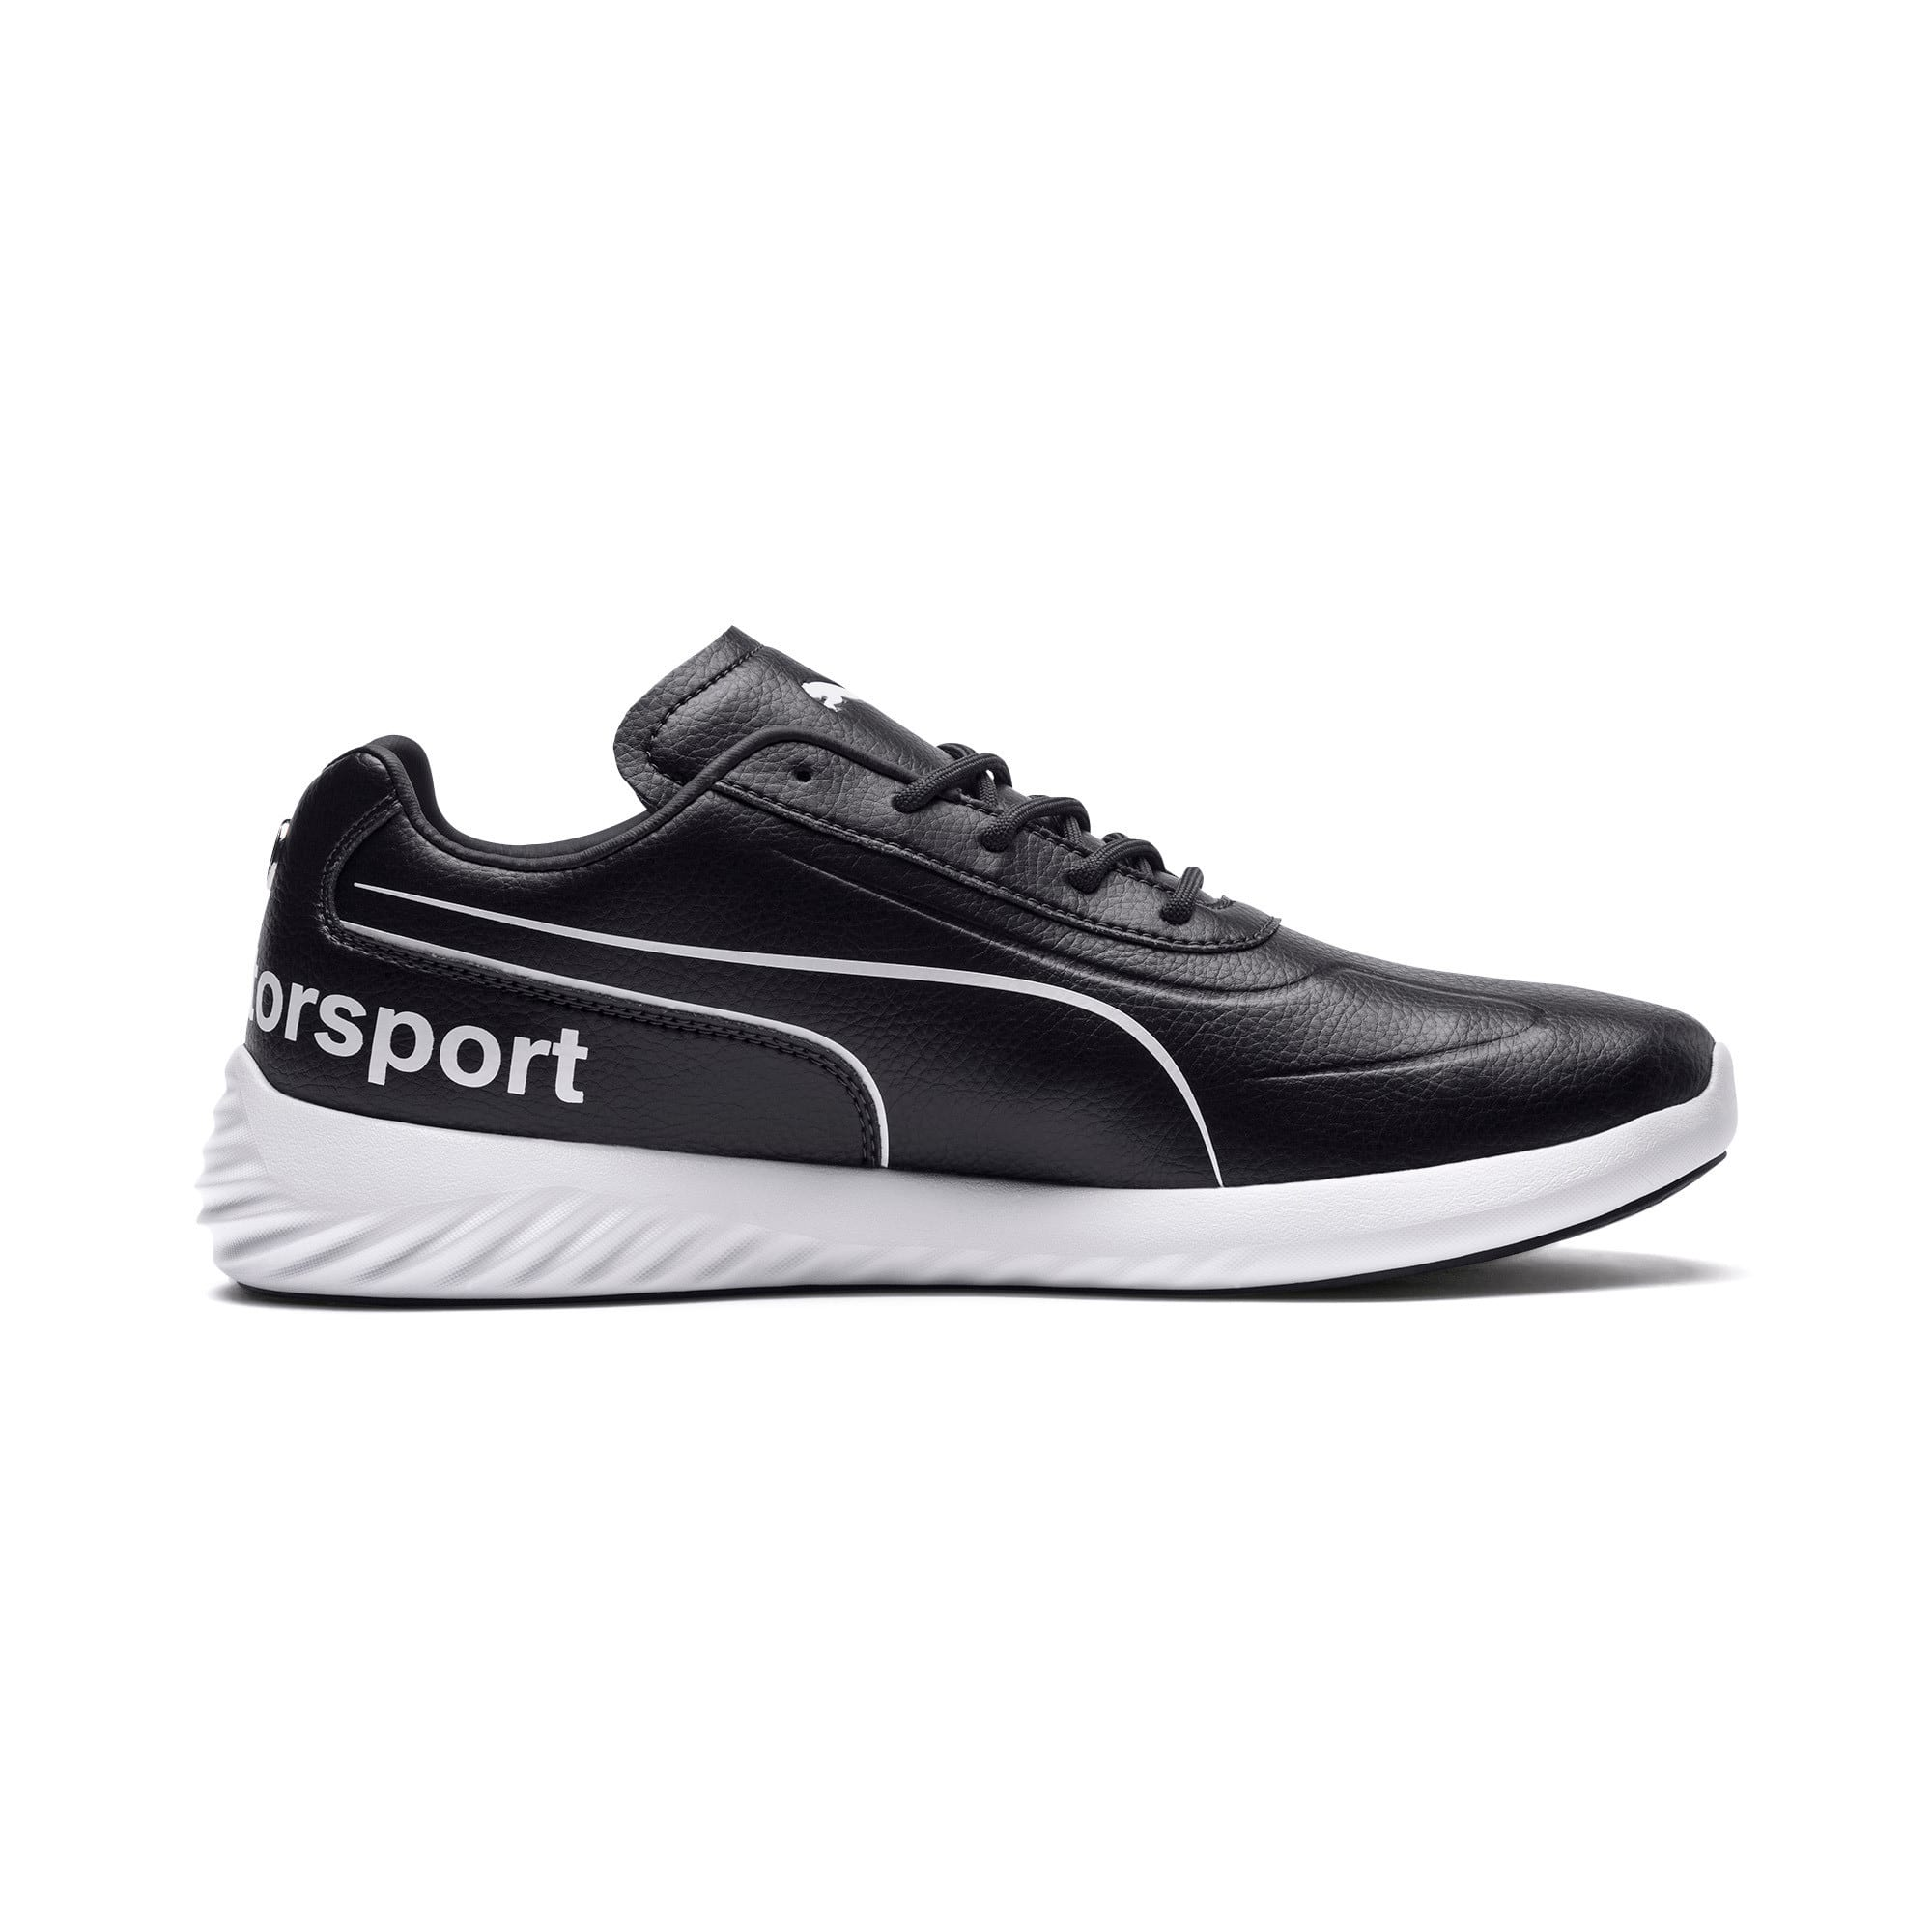 Thumbnail 5 of BMW M Motorsport SpeedCat Evo Synth Sneakers, Anthracite-Puma White, medium